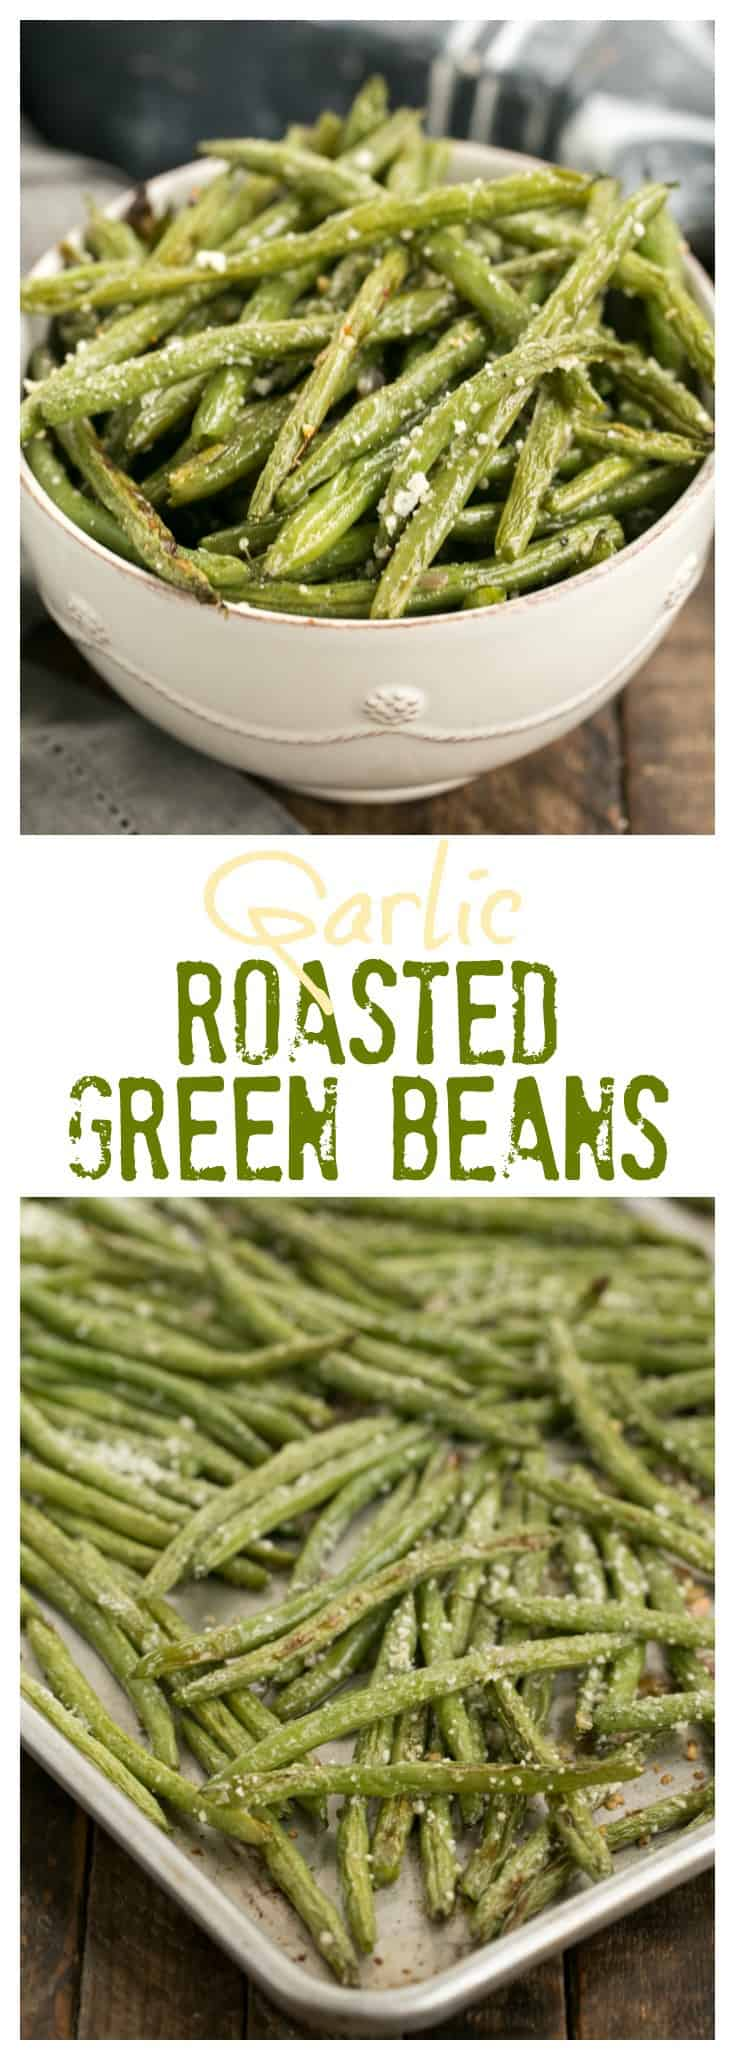 Garlic Parmesan Roasted Green Beans - An easy recipe to bring the best flavors out of fresh green beans #sidedish  #greenbeans #roasted #vegetables #garlic #Parmesan